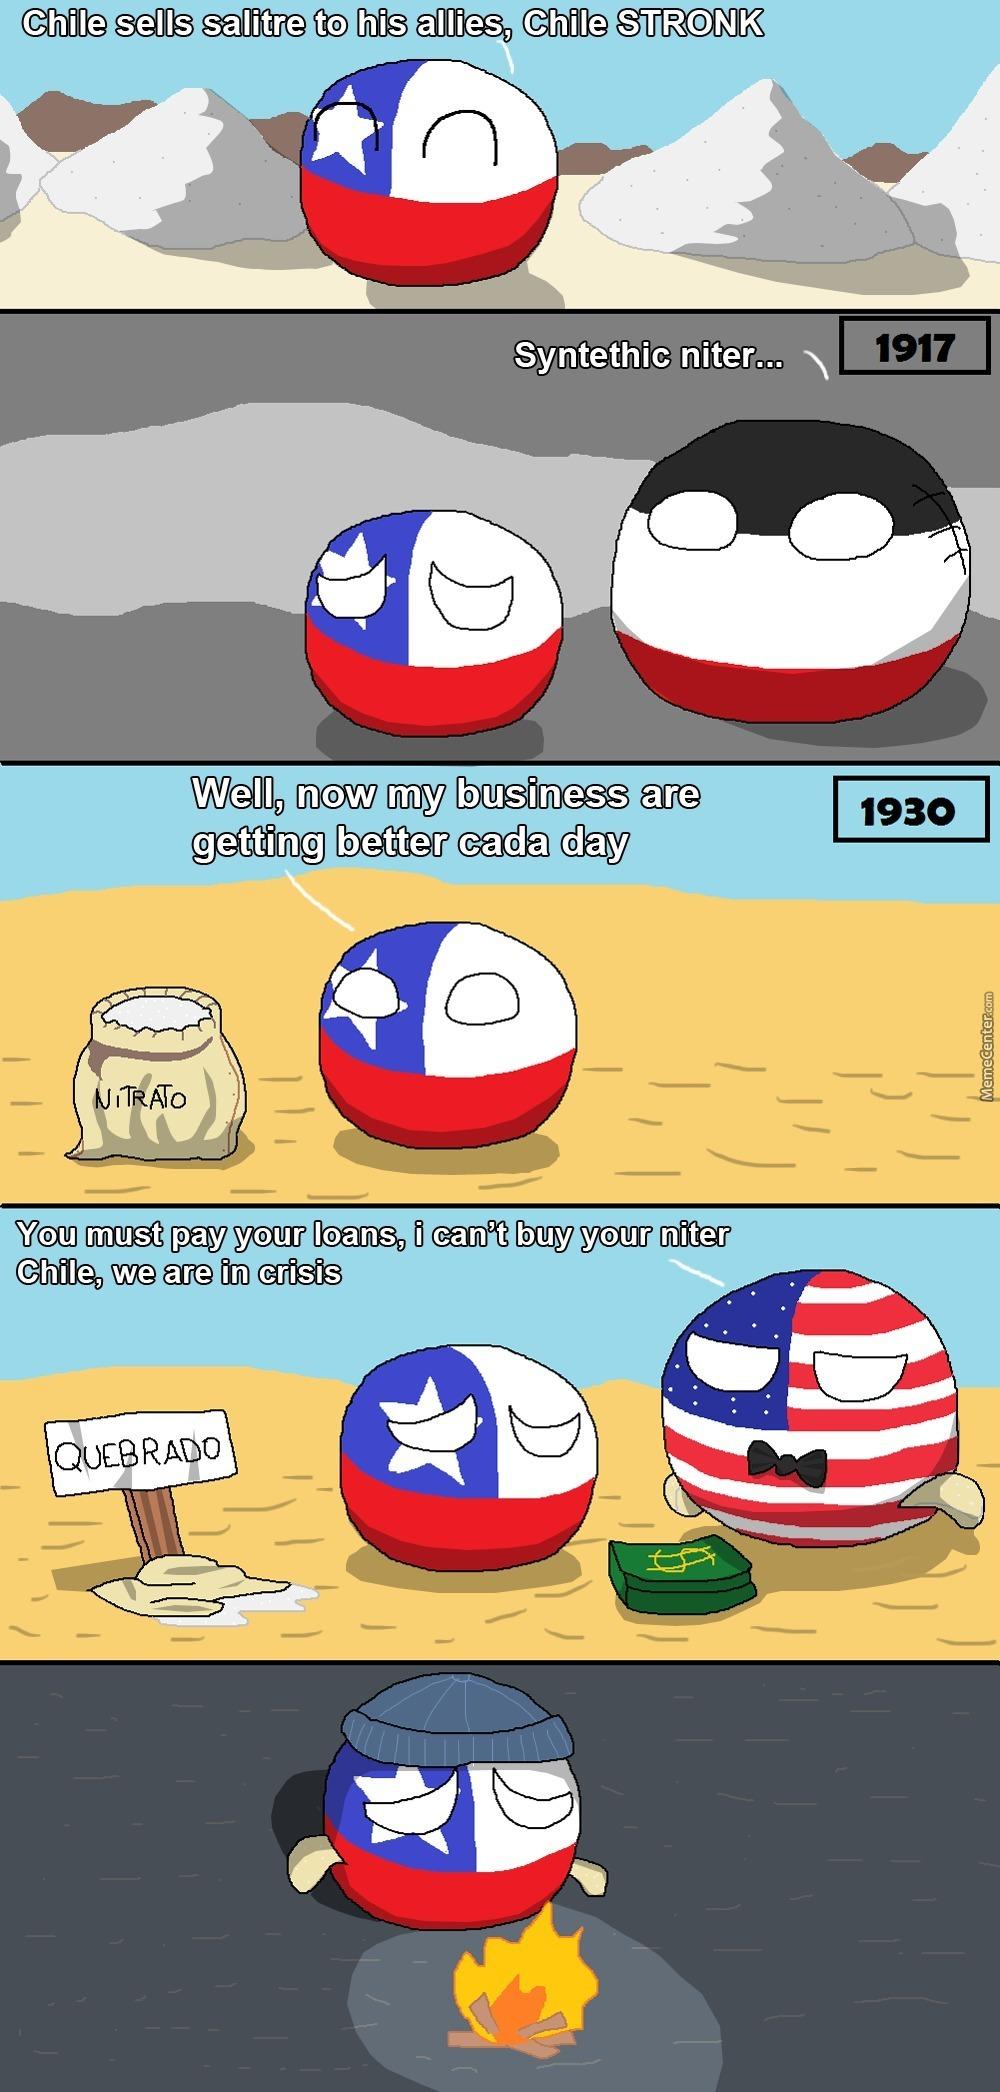 Poor Chile